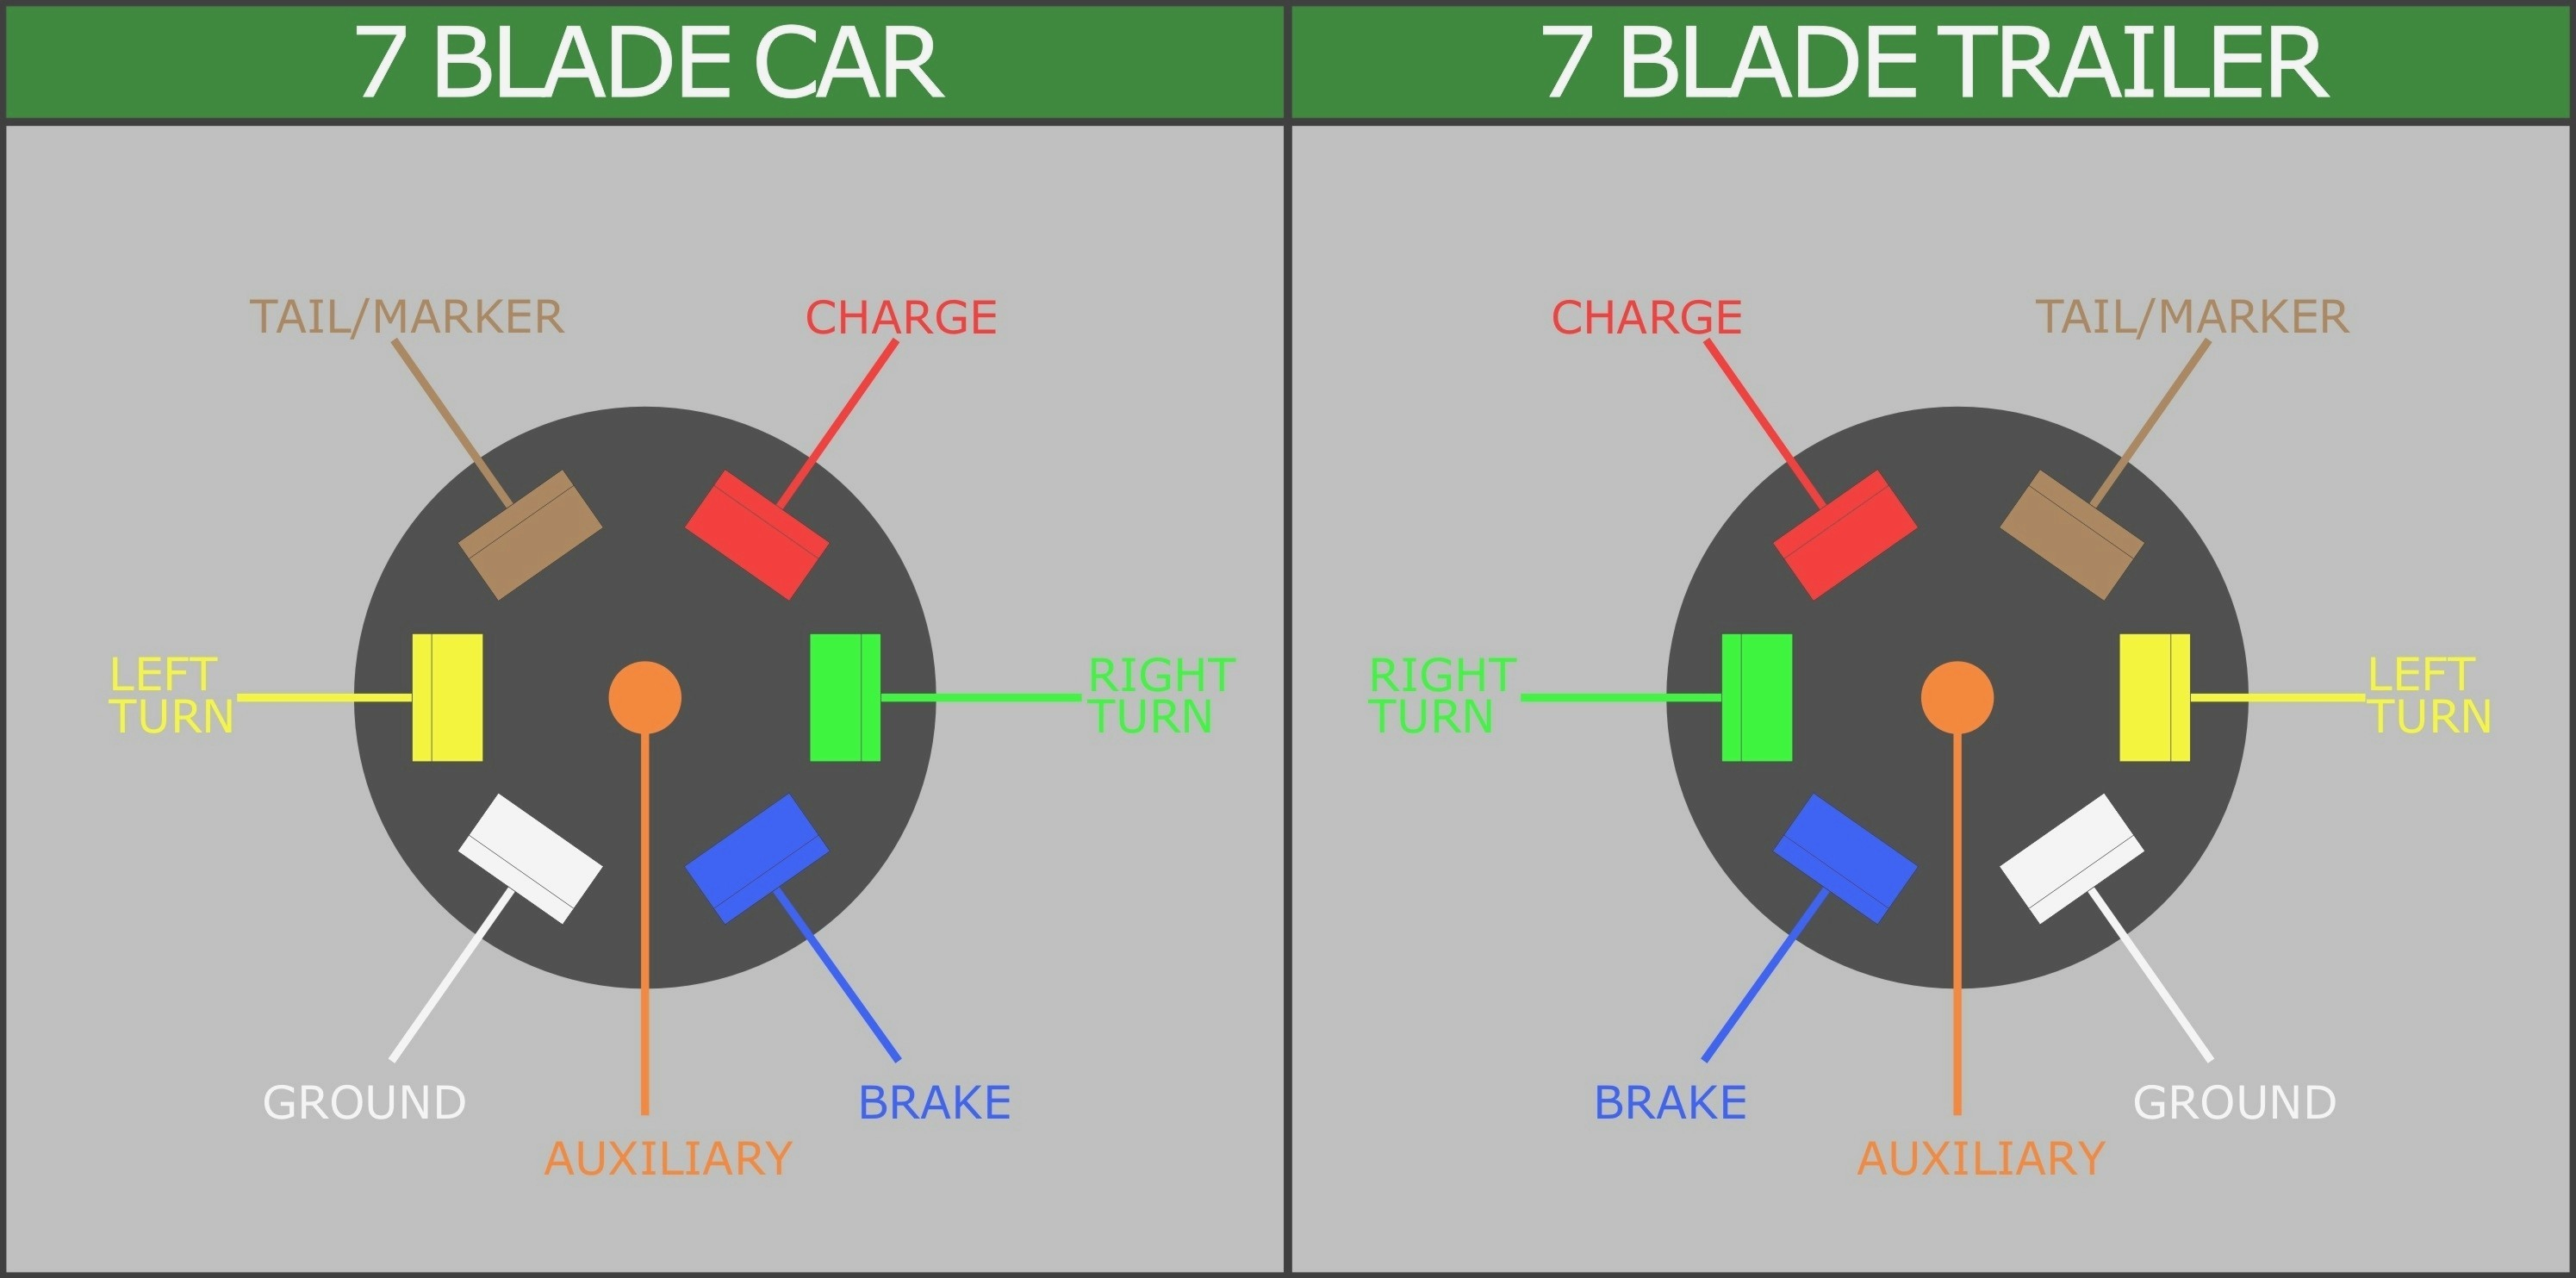 7 Blade Truck Wiring Diagram - Wiring Diagram Explained - Seven Blade Trailer Wiring Diagram